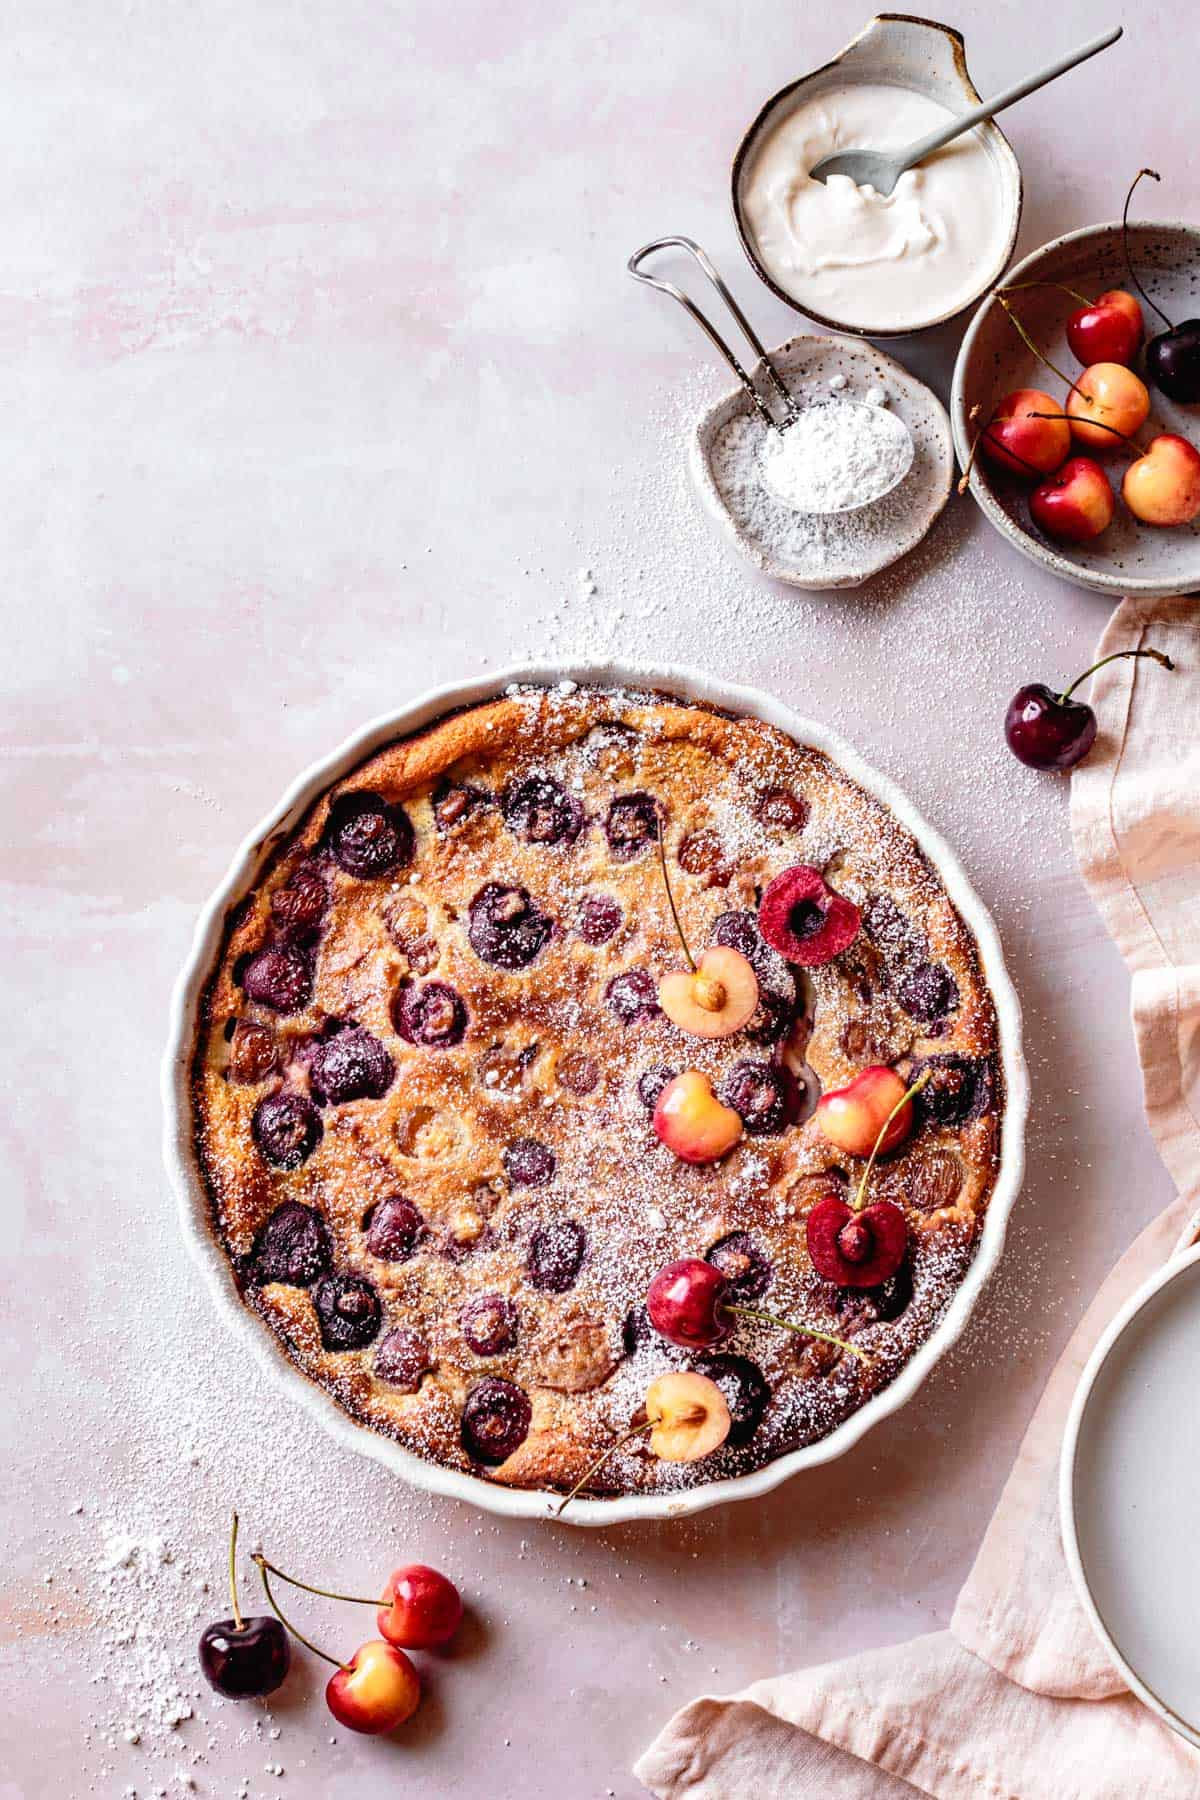 Gluten-Free Cherry Clafoutis recipe, after baking, sprinkled with powdered sugar